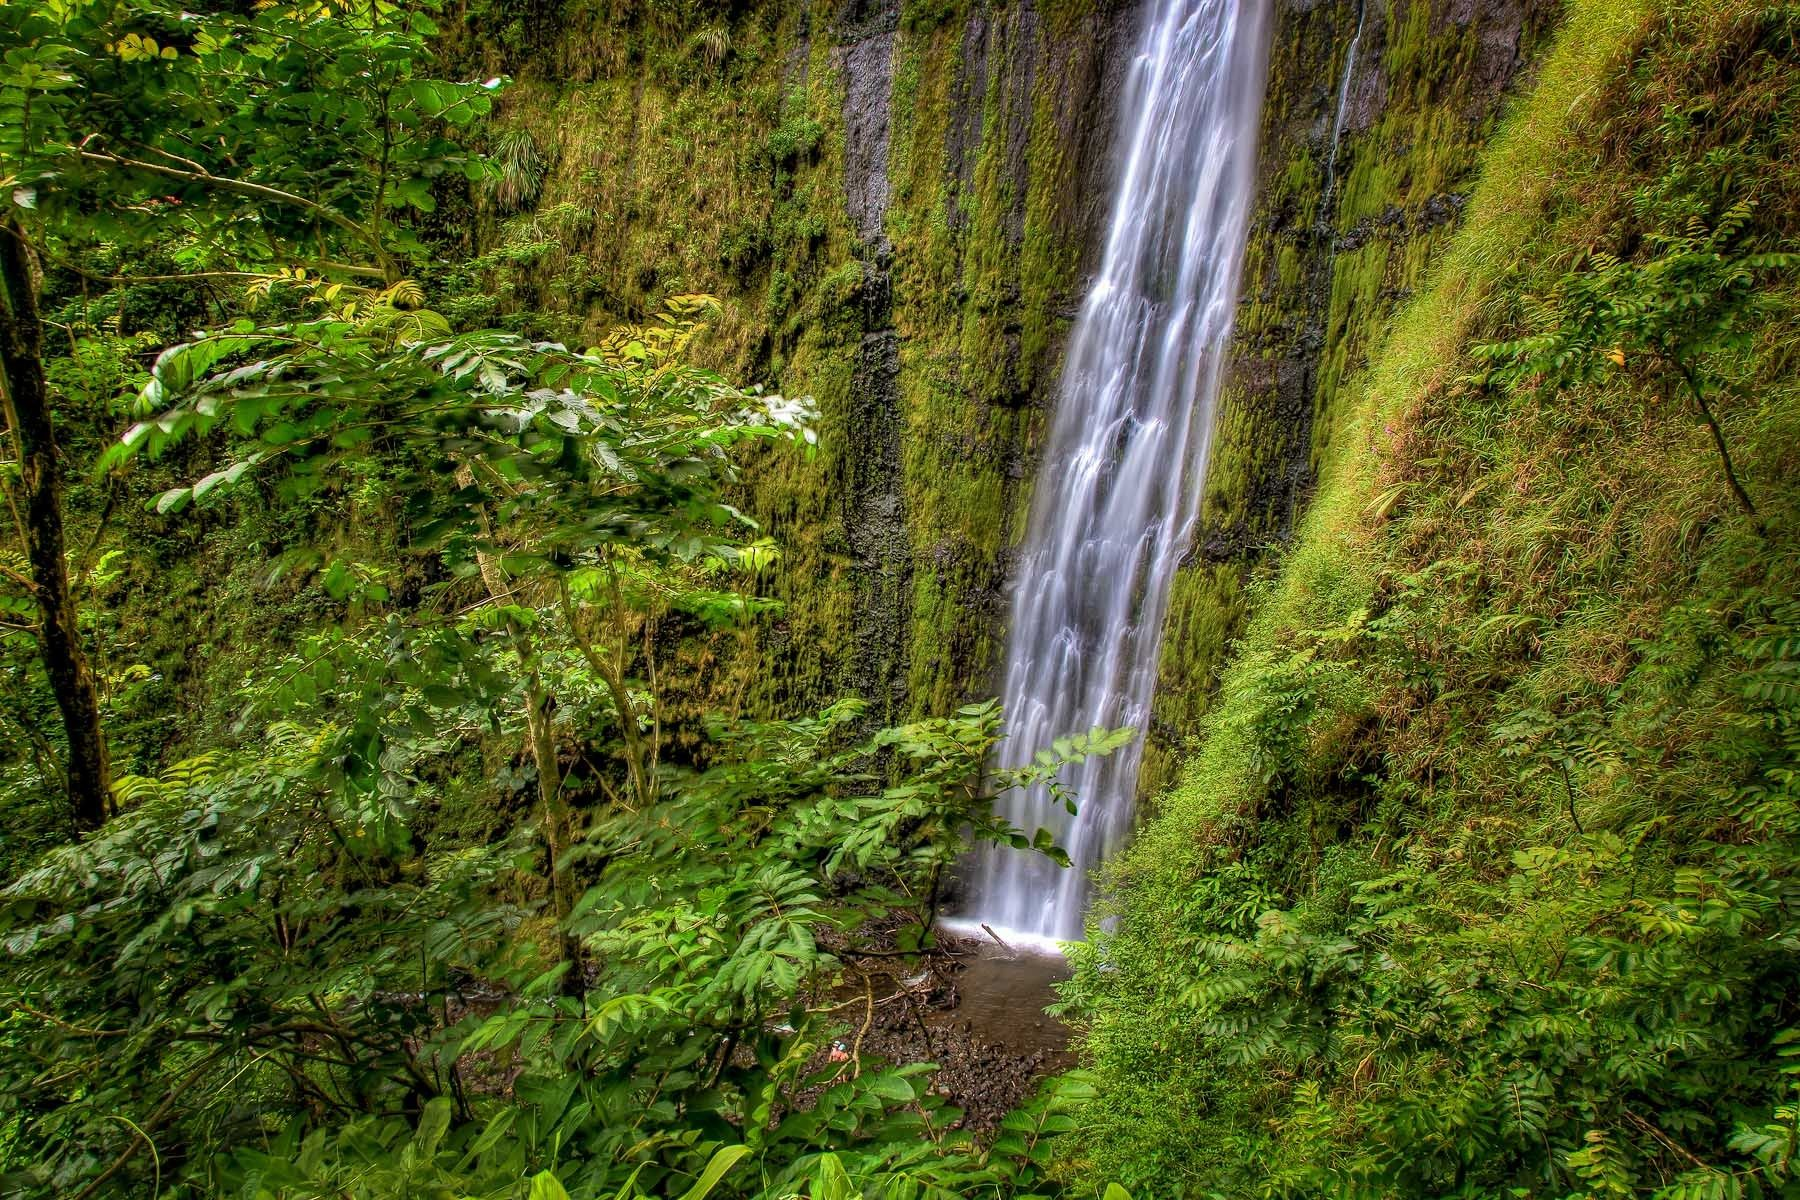 1hawaii_2012_8972hdr.jpg